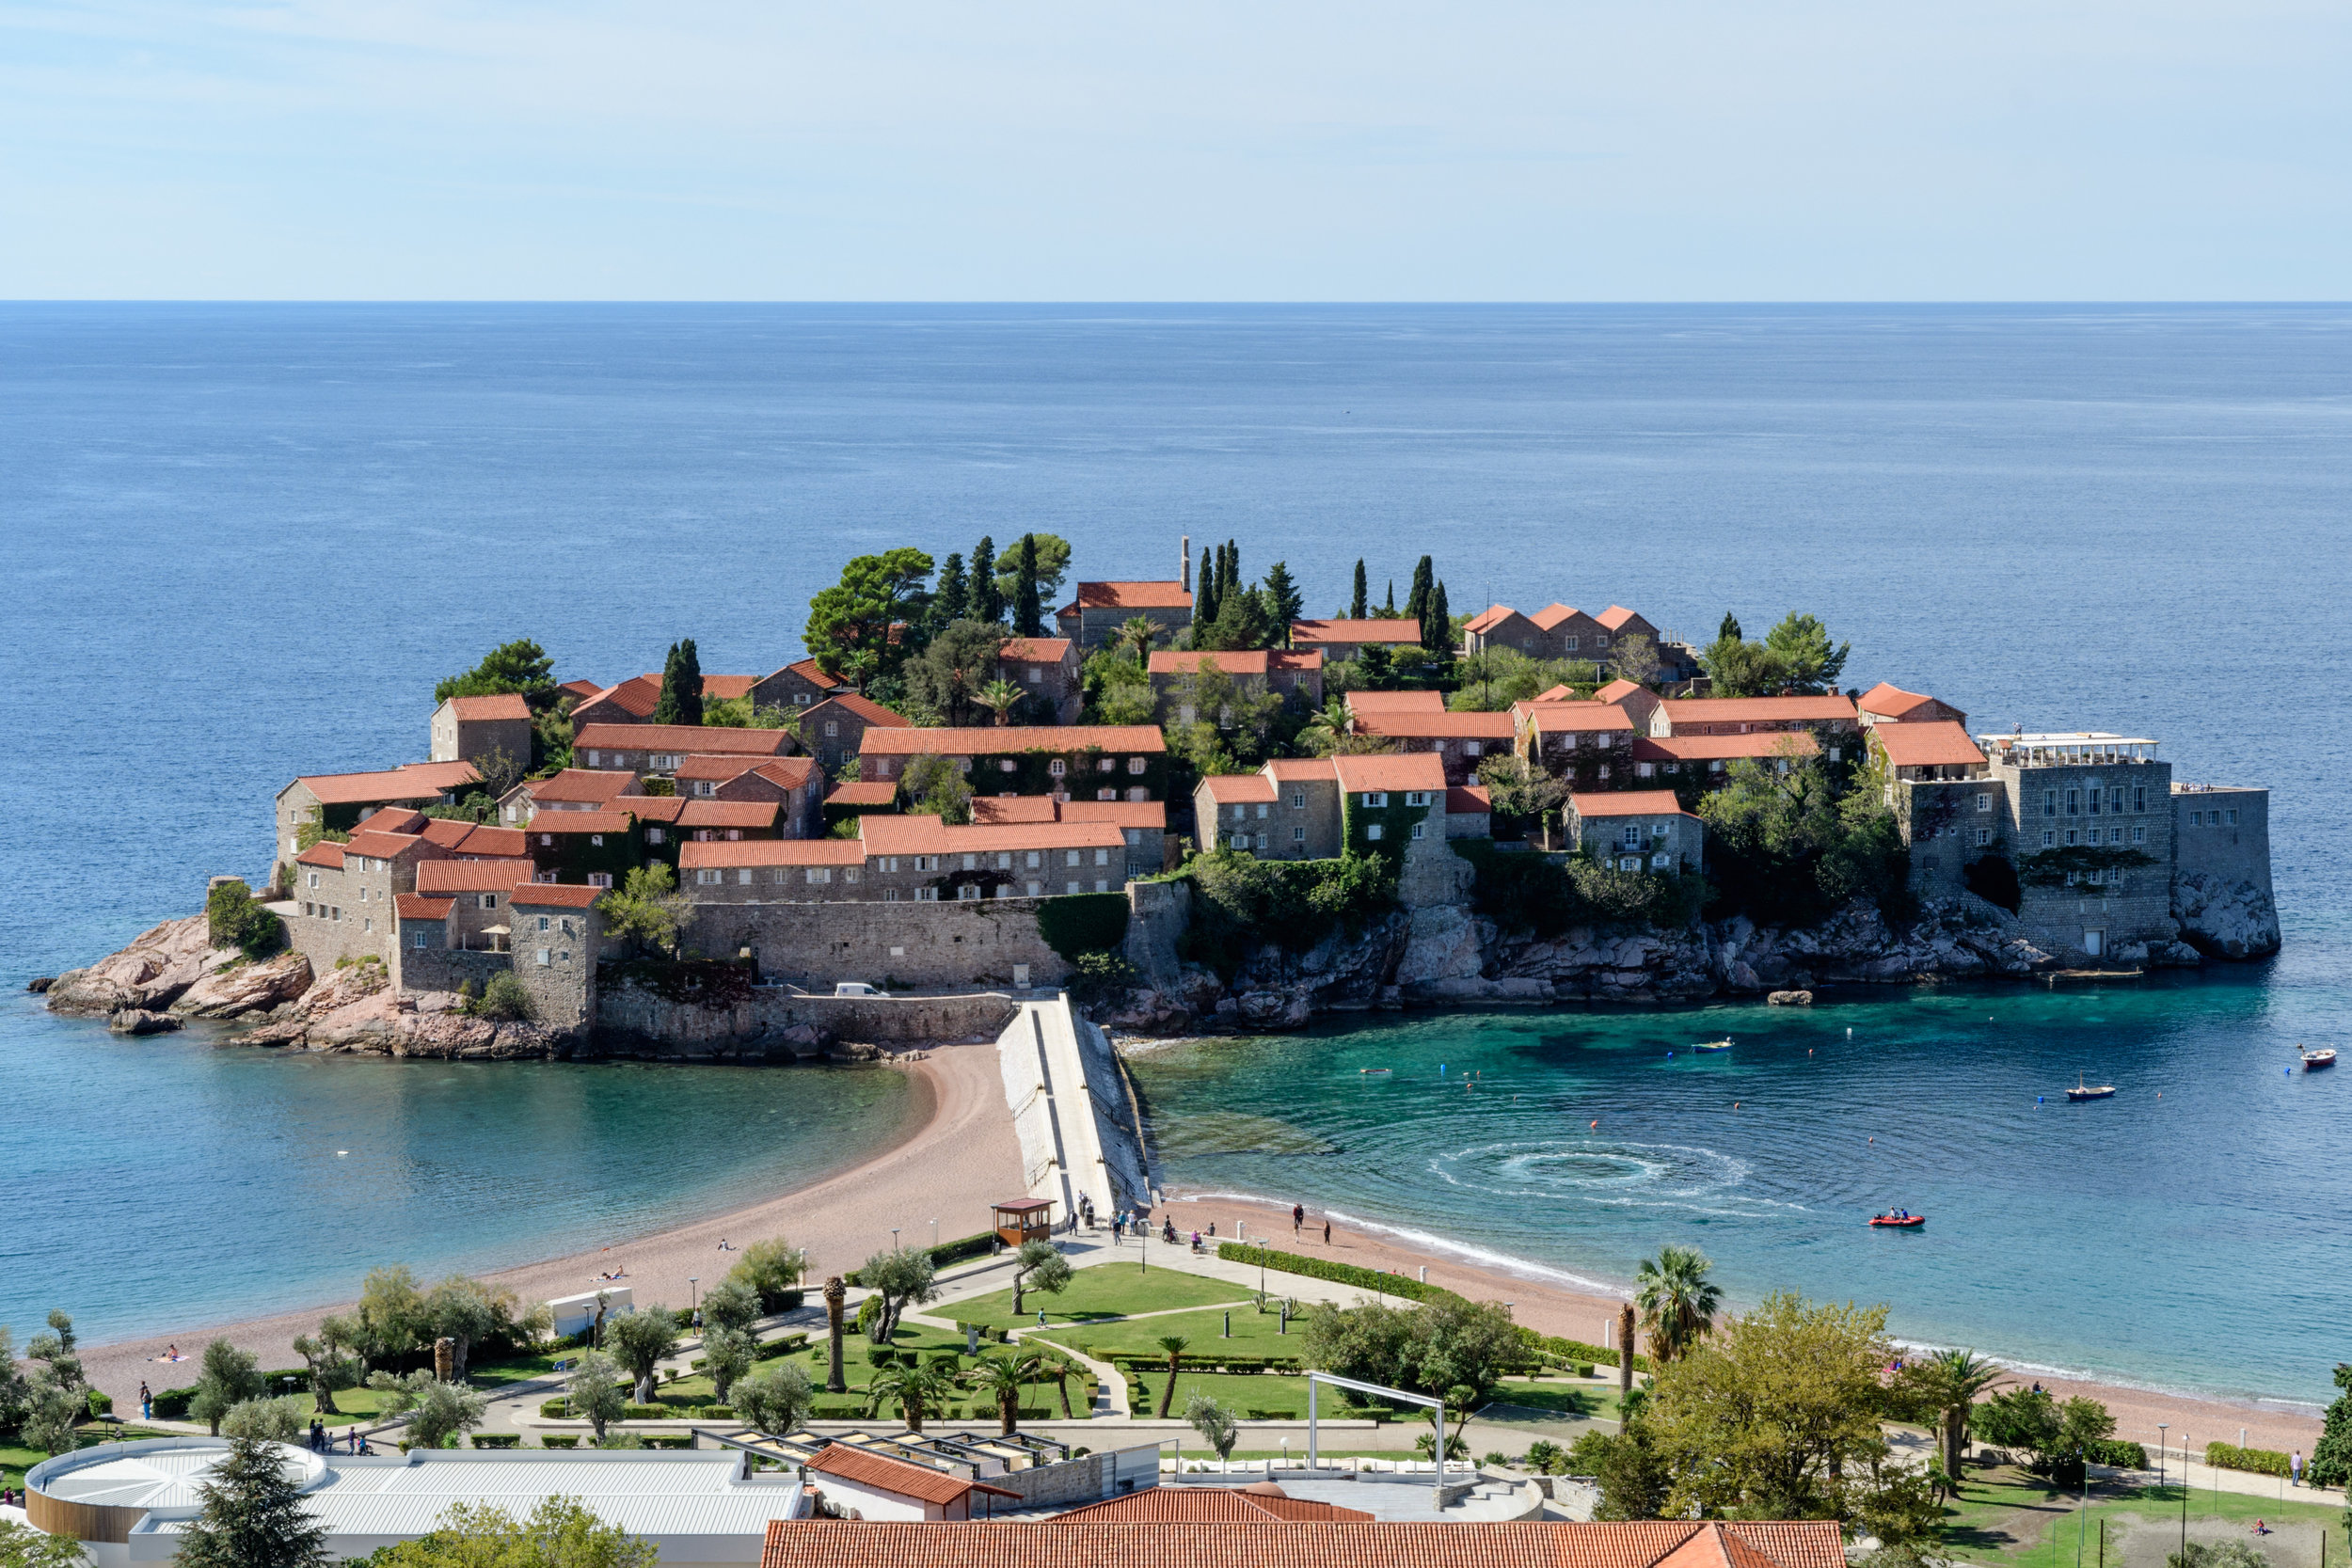 A private resort along the Budva Riviera at the site of the St Stefan church